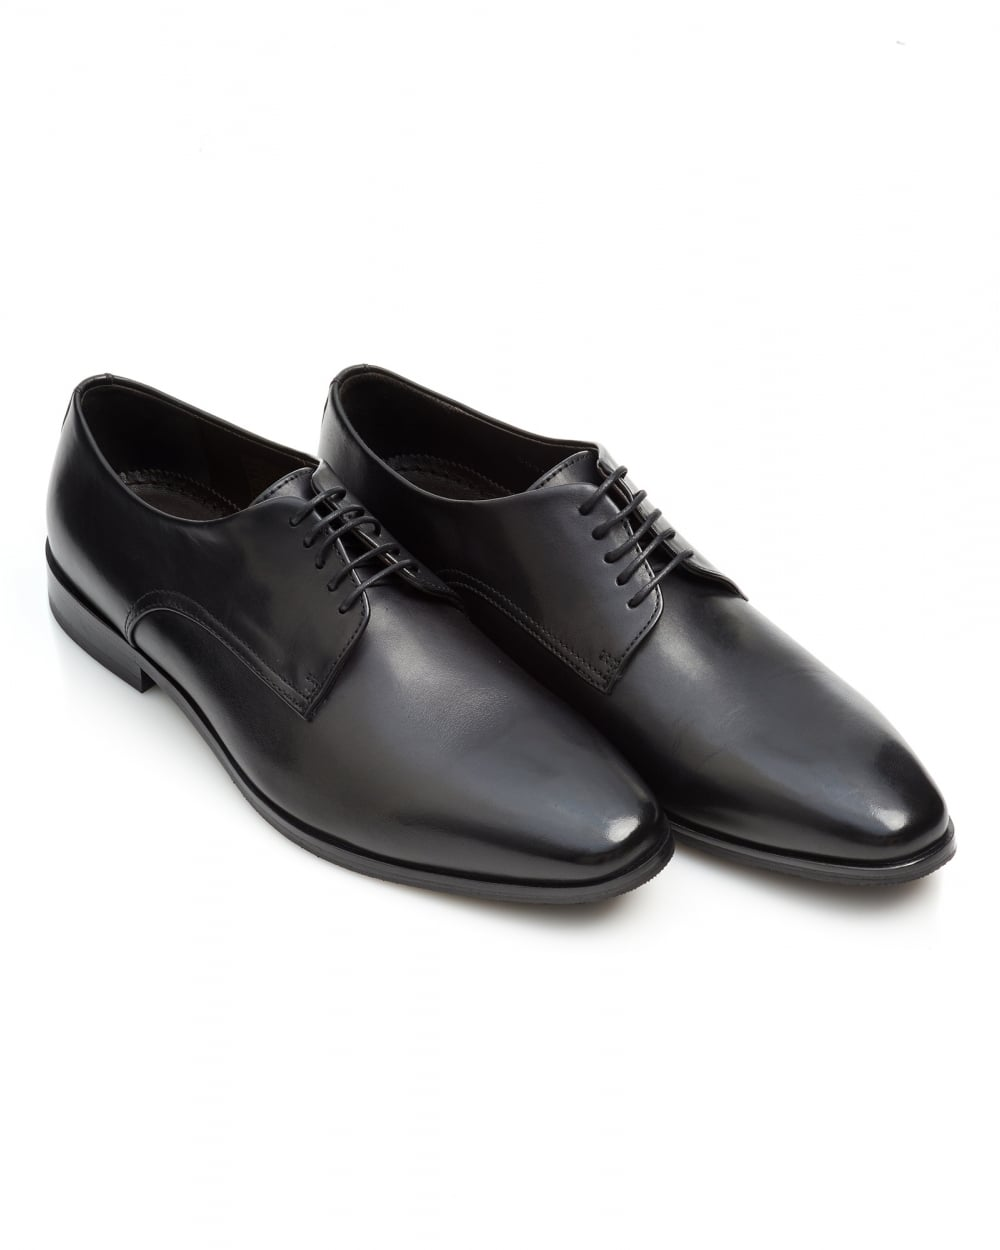 Boss Hugo Boss formal Derby shoes best prices cheap price sale cost clearance wholesale price iHOCbFDHX